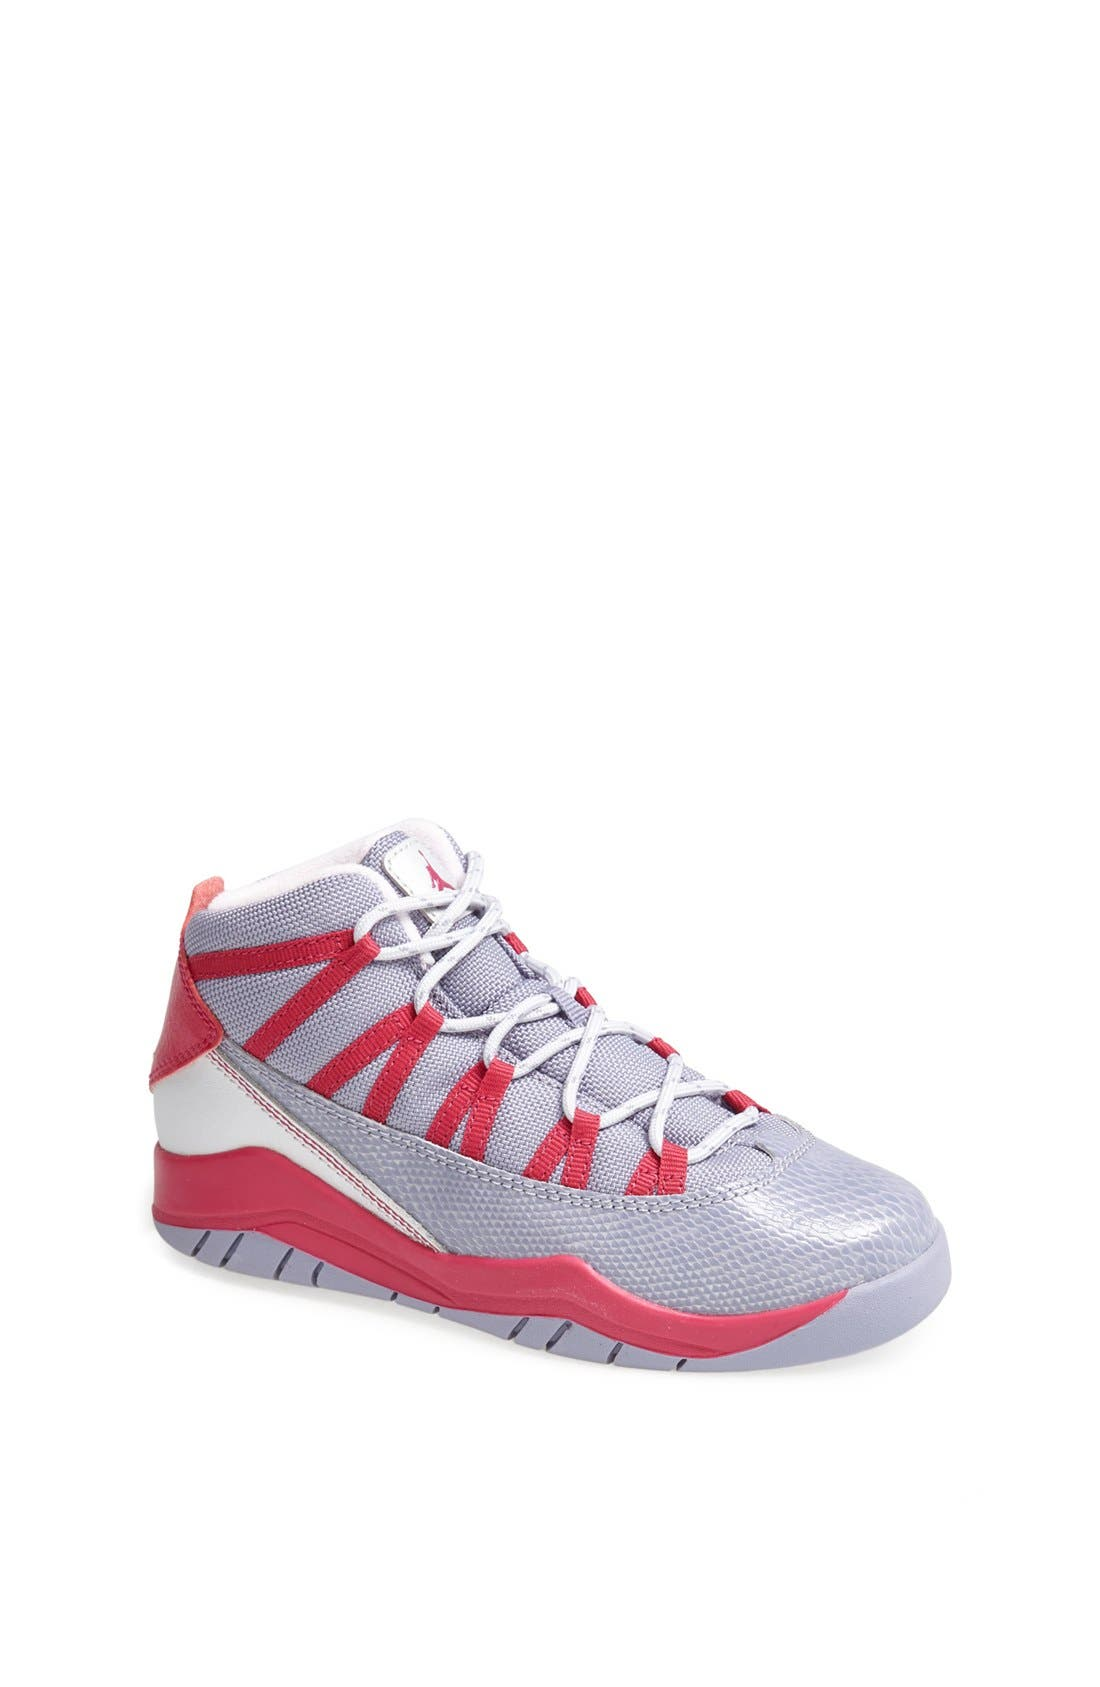 Alternate Image 1 Selected - Nike 'Jordan Prime Flight' Basketball Shoe (Toddler & Little Kid)